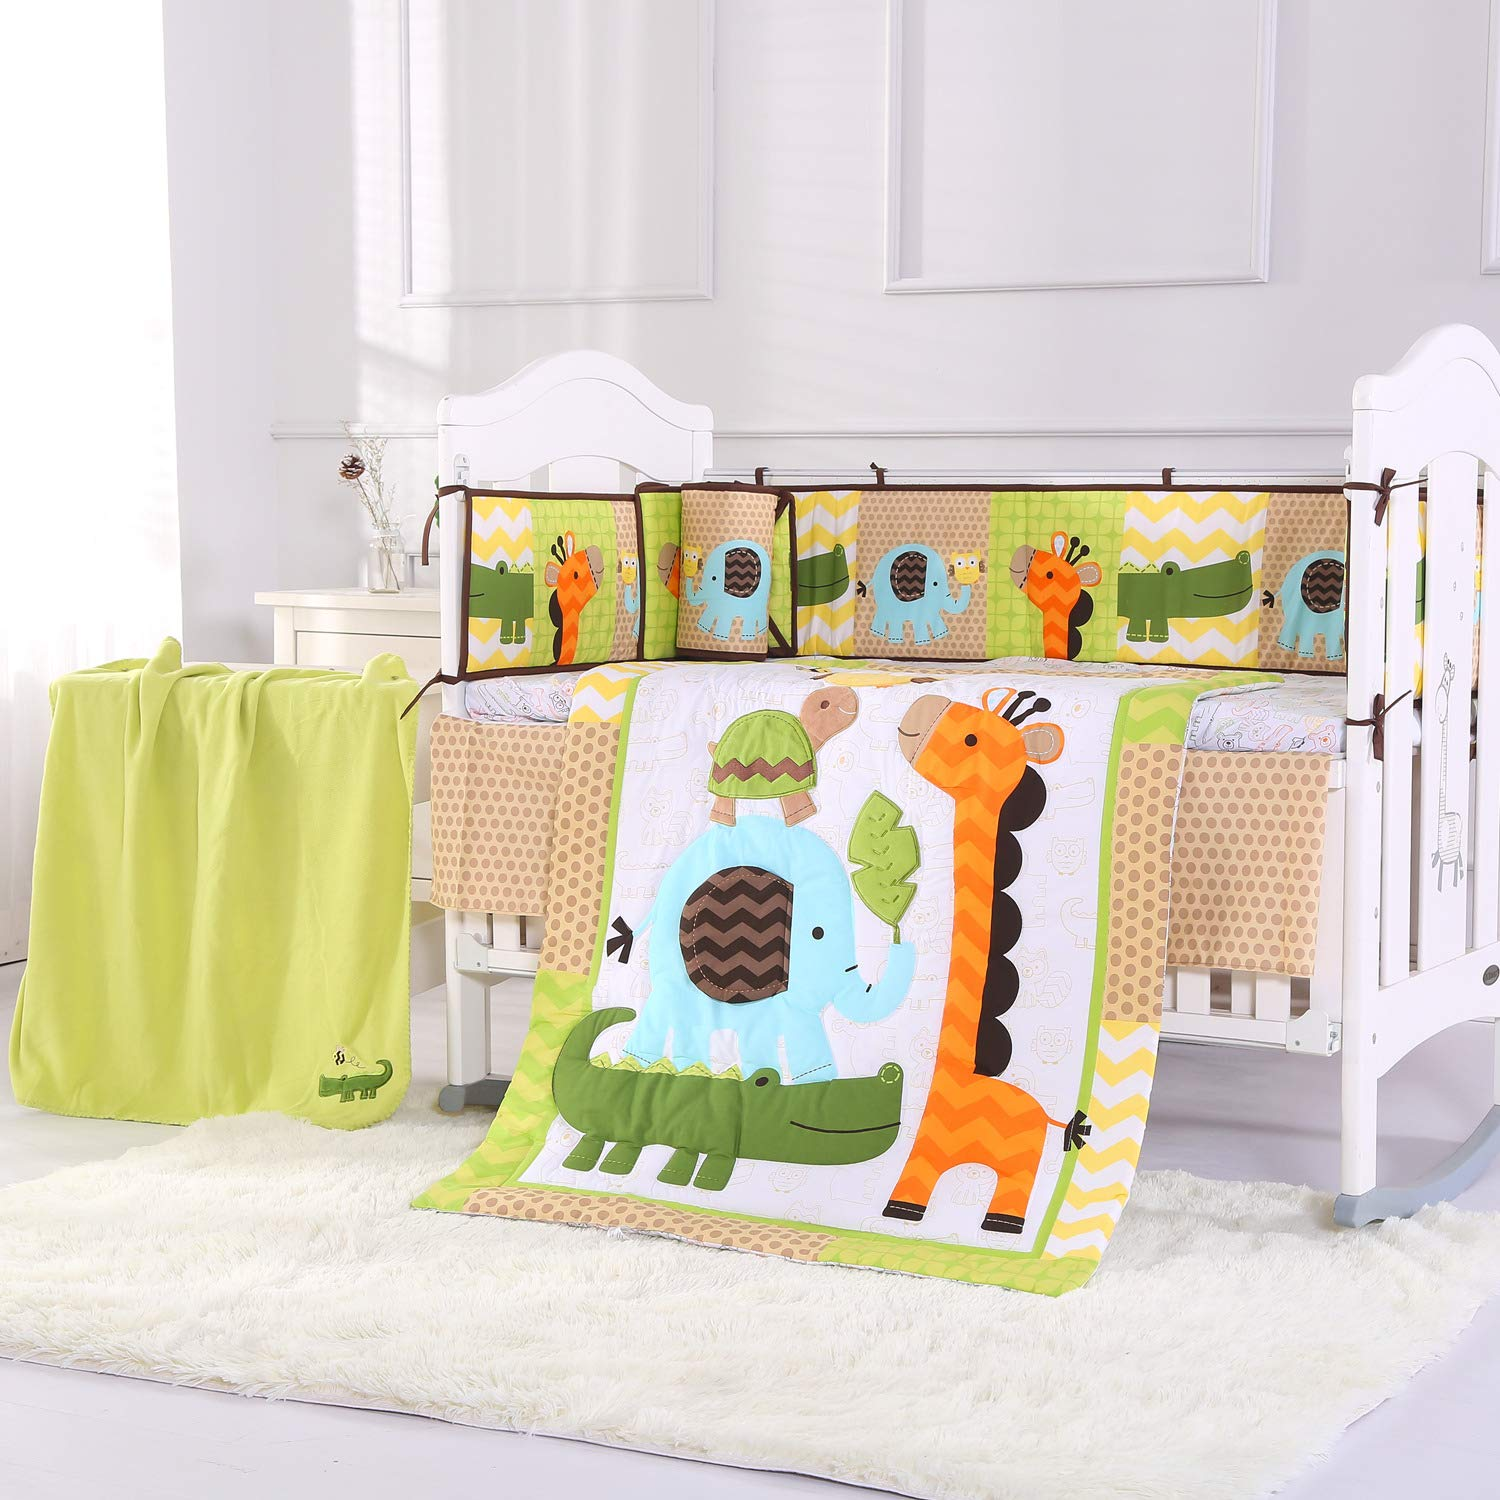 Wowelife Giraffe Nursery Bedding 100% Cotton Upgraded Blue Elephant Yellow Giraffe Green Crocodile Crib Bedding Sets 8 Piece for Baby Girls and Boys with Bumpers and Blanket(Orange Giraffe-8 Piece)